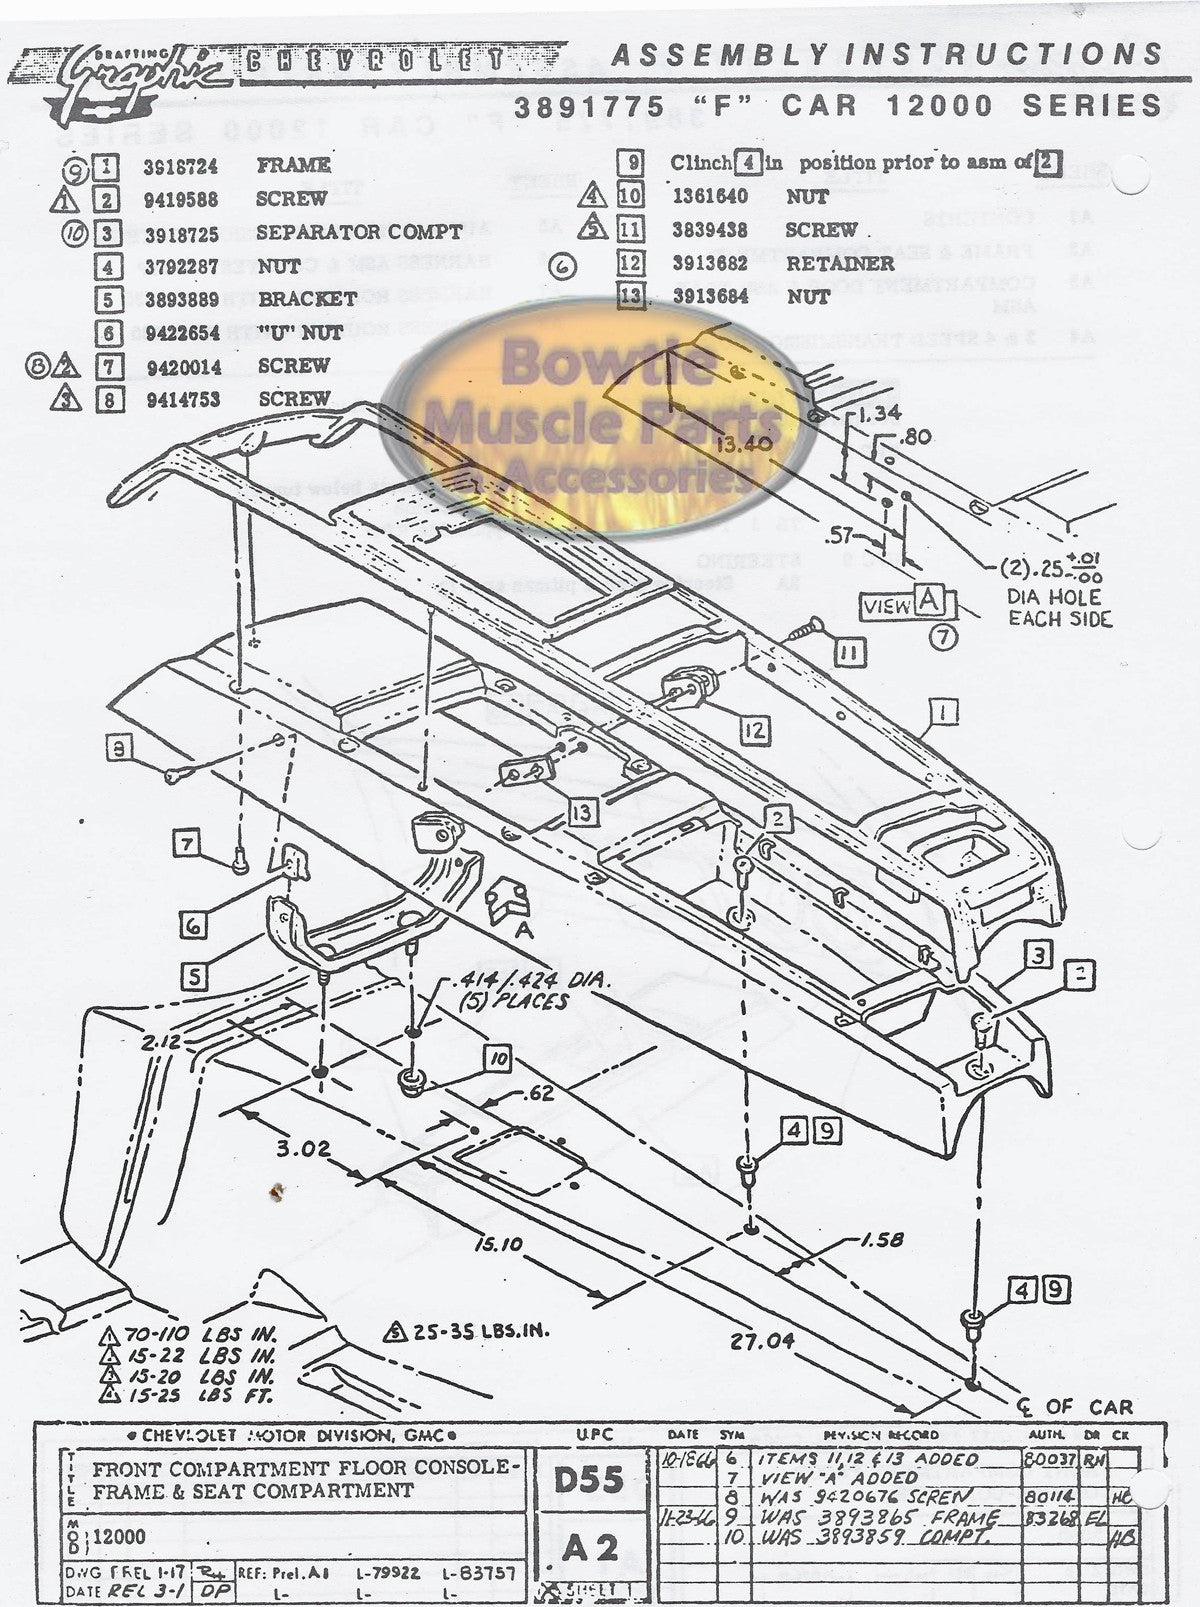 1969 69 camaro factory assembly manual z28 ss rs 488 pages rh bowtiemuscleparts com 68 Camaro 67 Camaro